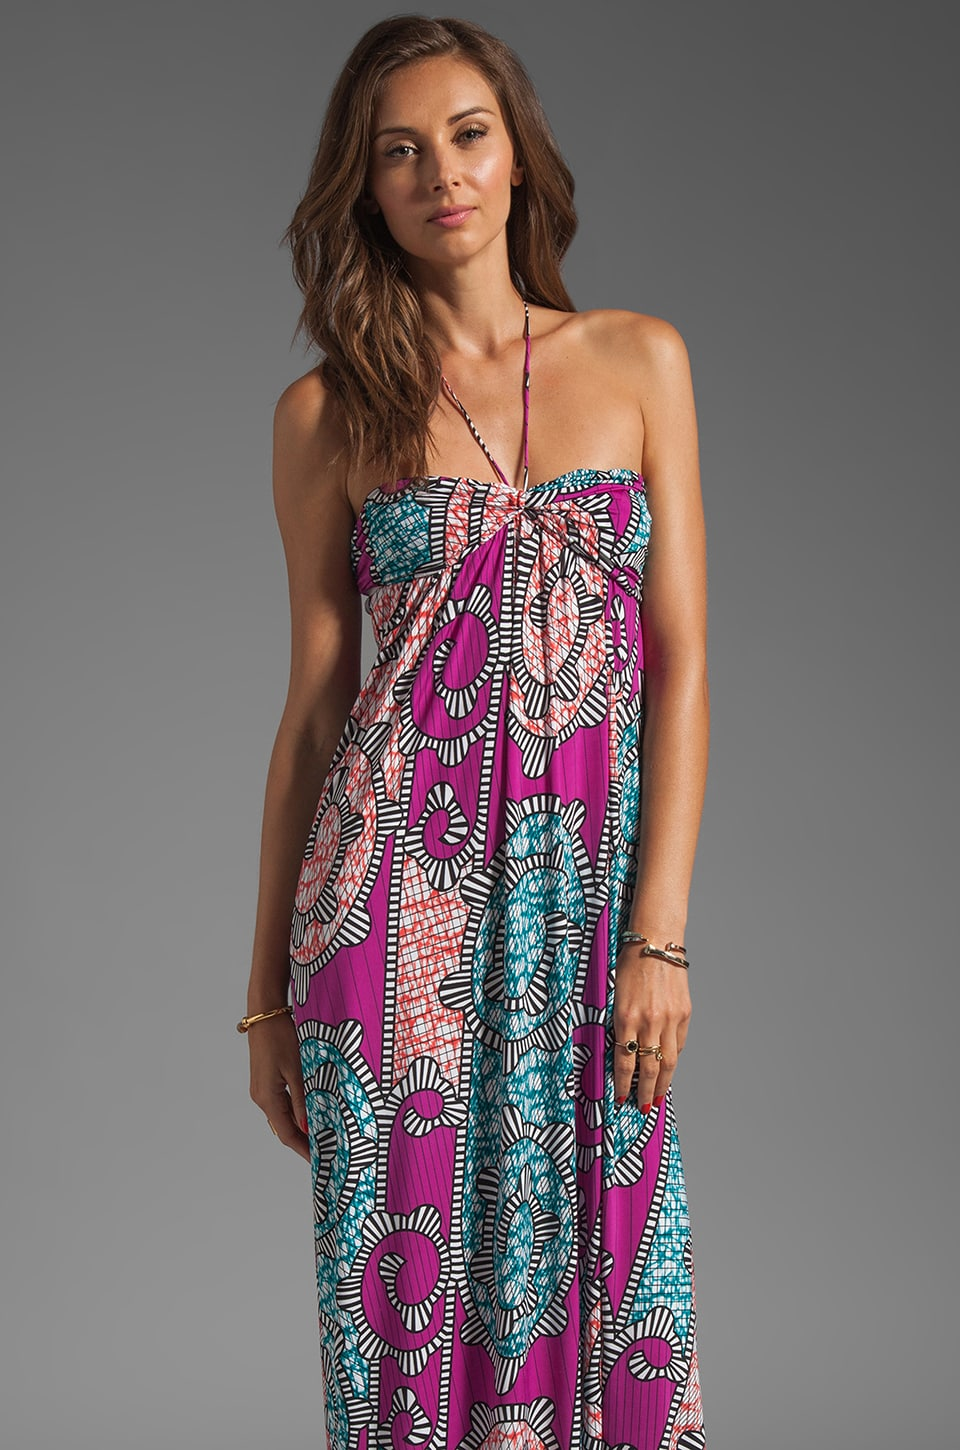 T-Bags LosAngeles Strapless Maxi in Multi